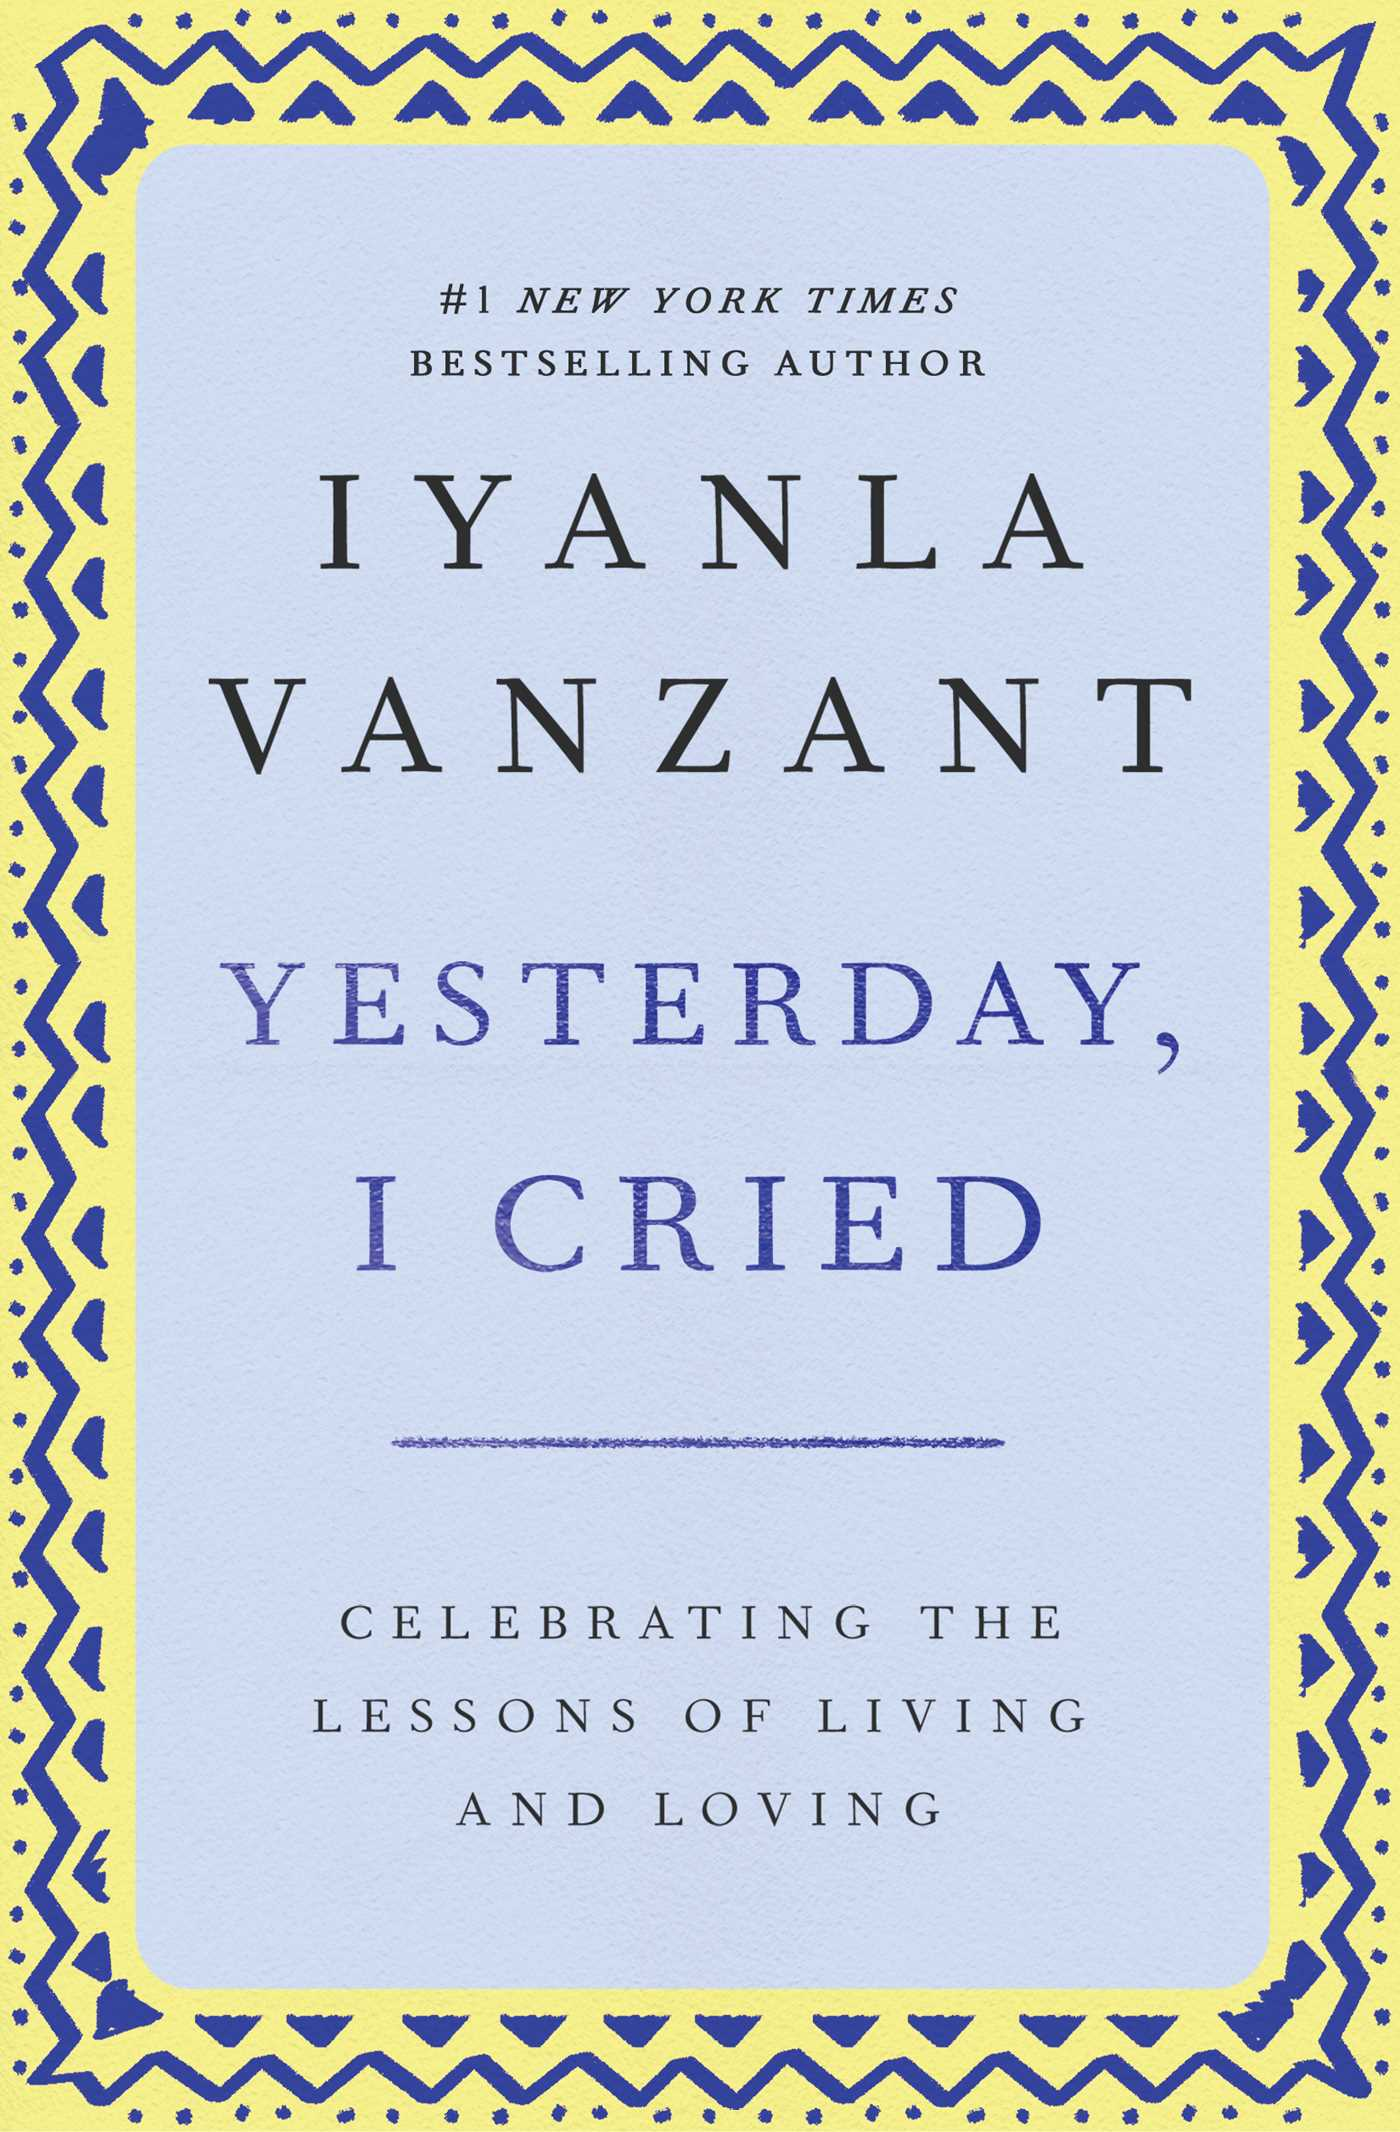 yesterday i cried The author draws on her personal experiences to show how hardships can be transformed into lessons in spiritual growth, healing, and love.